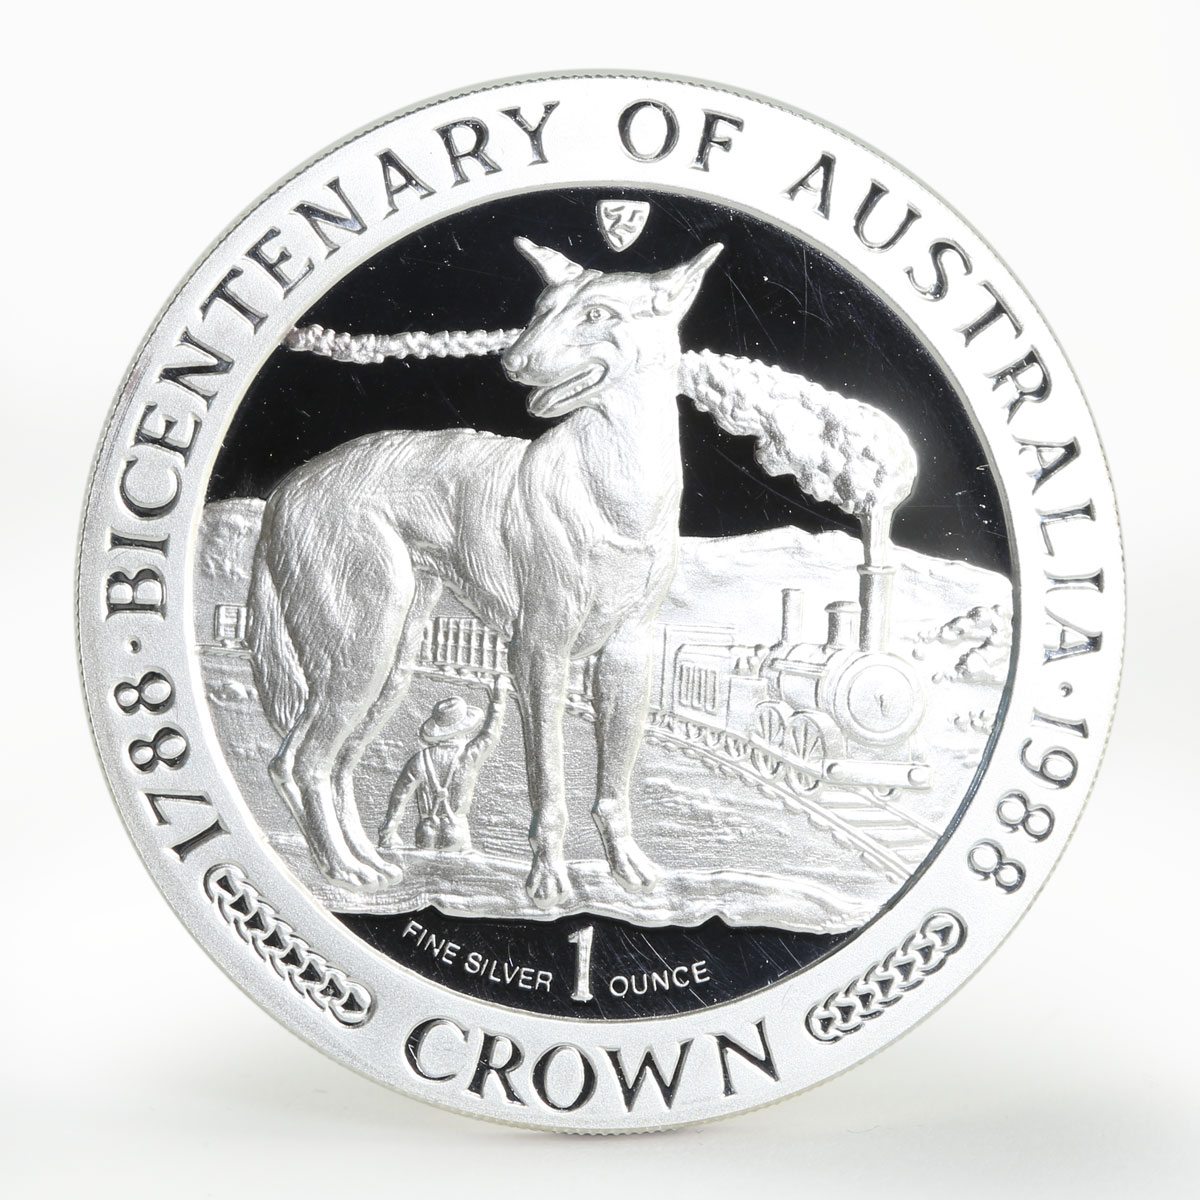 Isle of Man 1 crown Bicentenary of Australia proof silver coin 1988